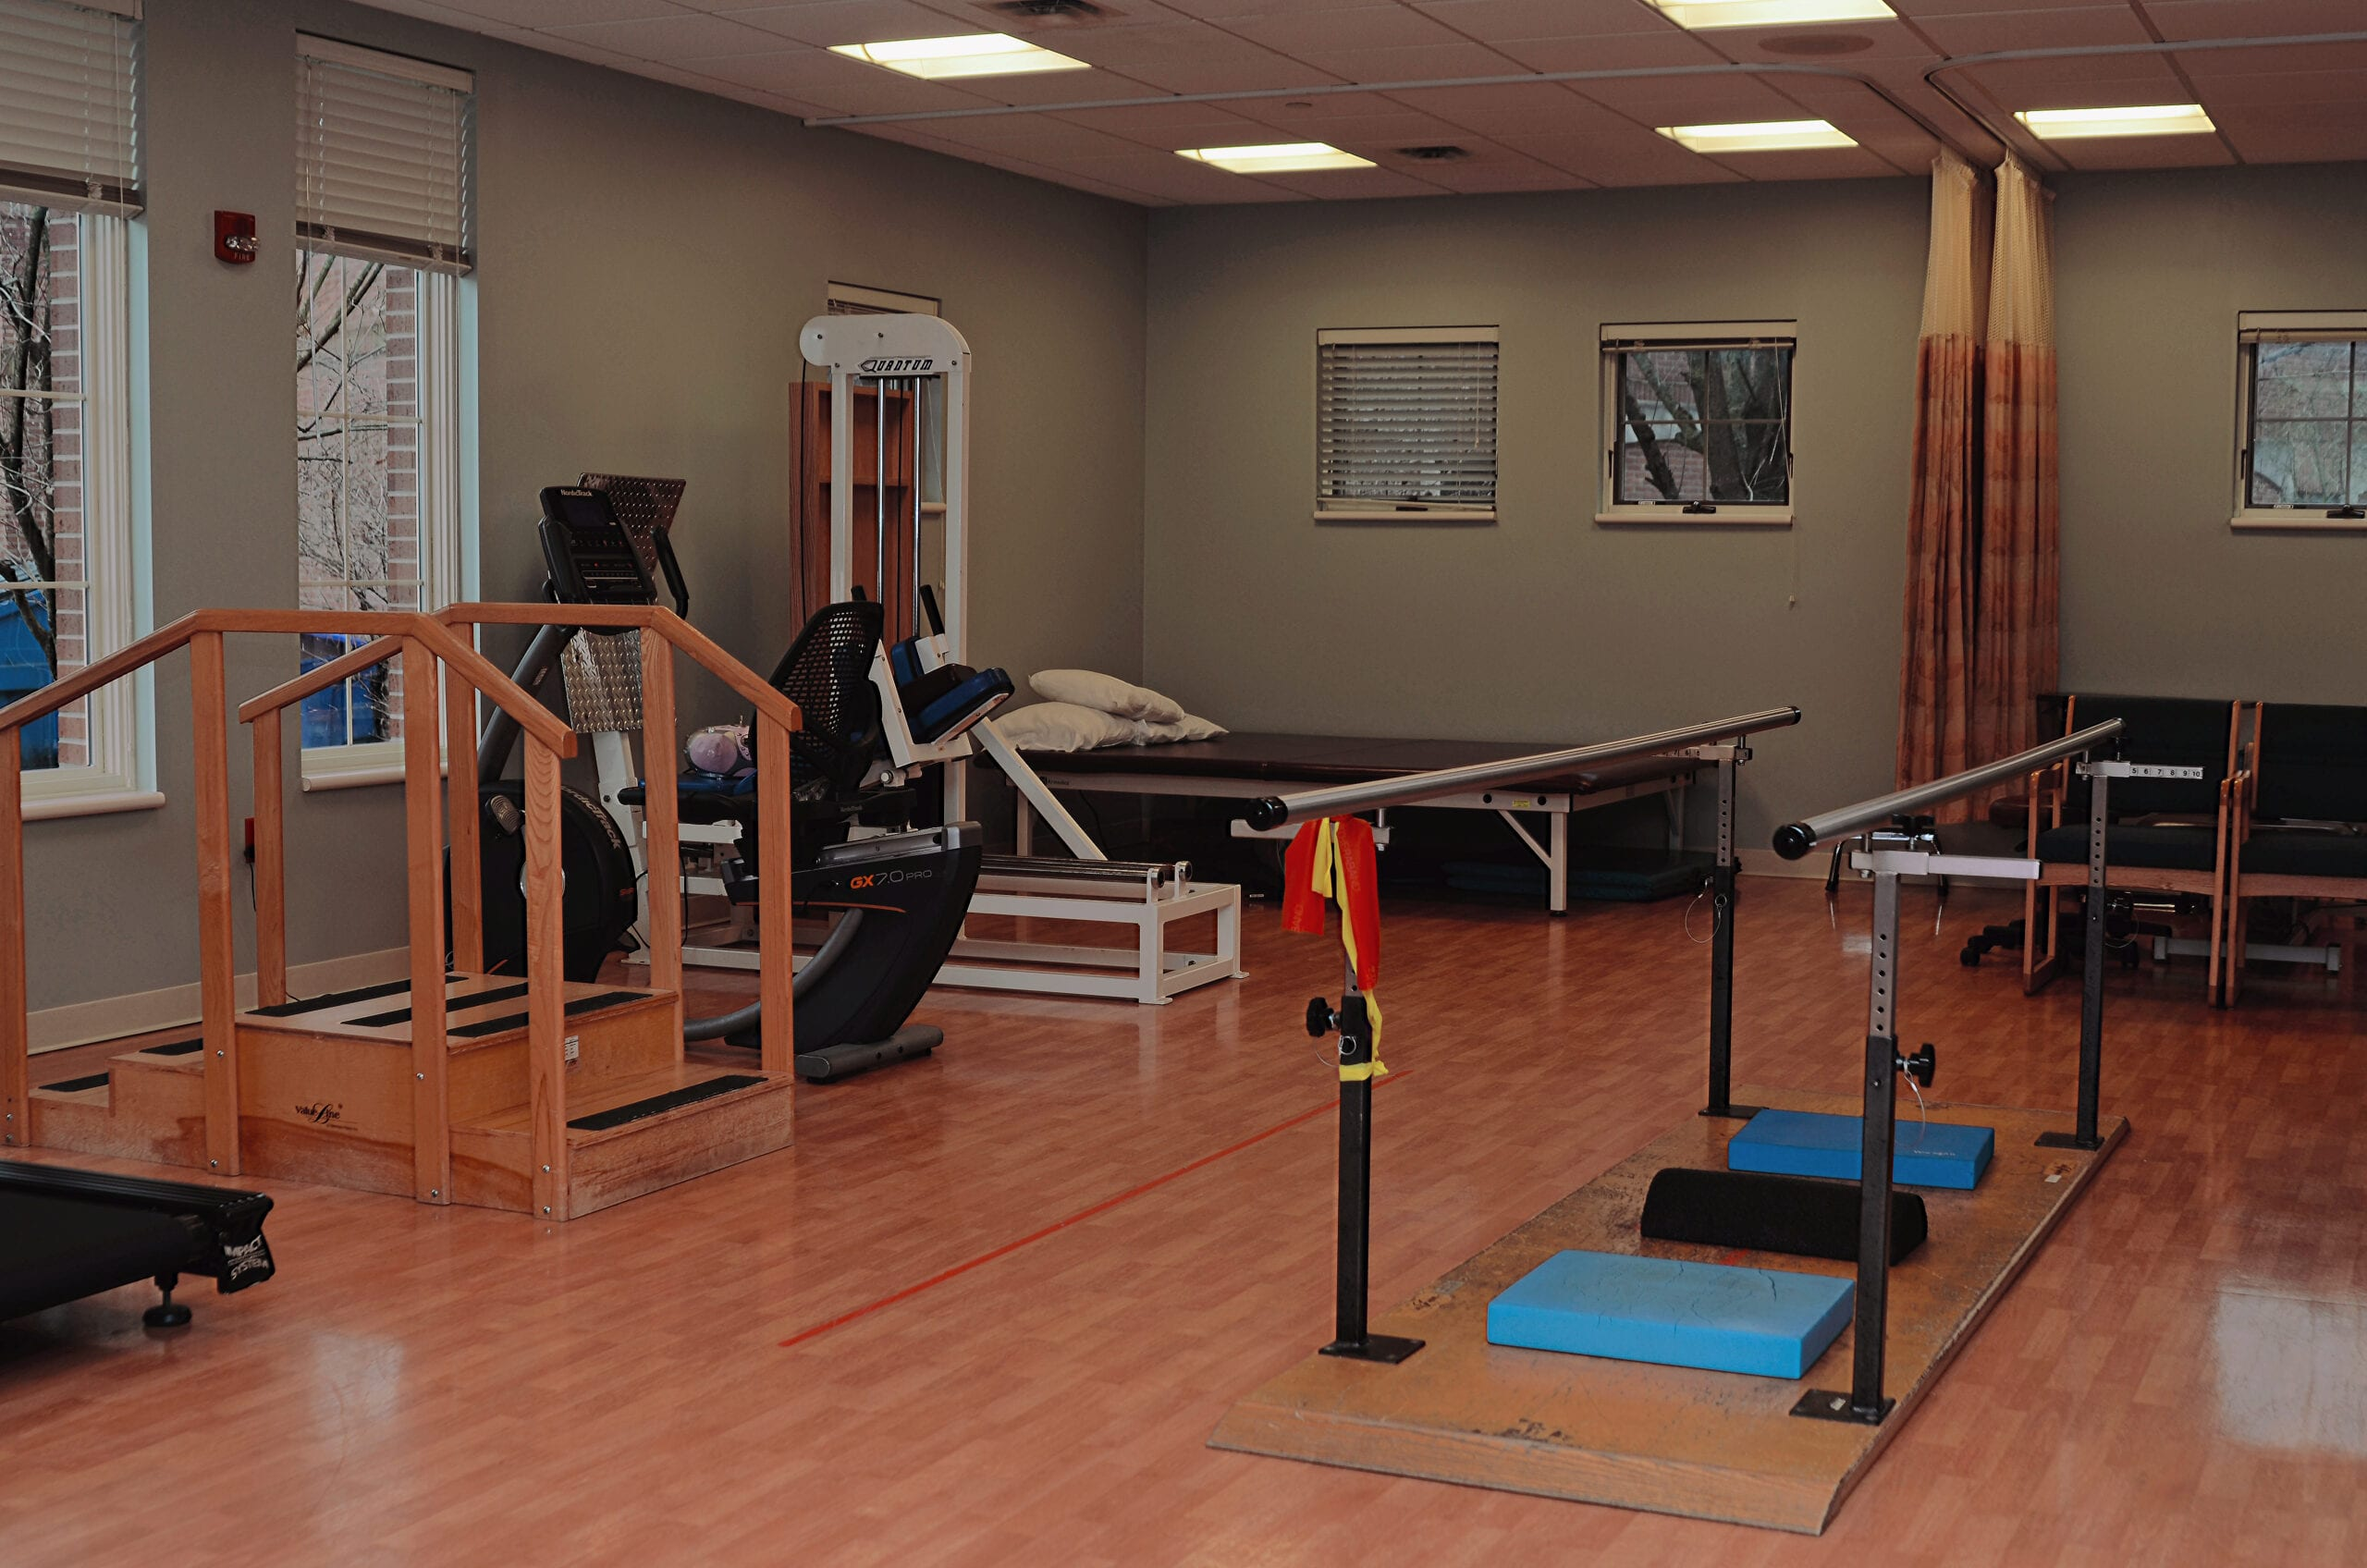 Inpatient and outpatient rehab